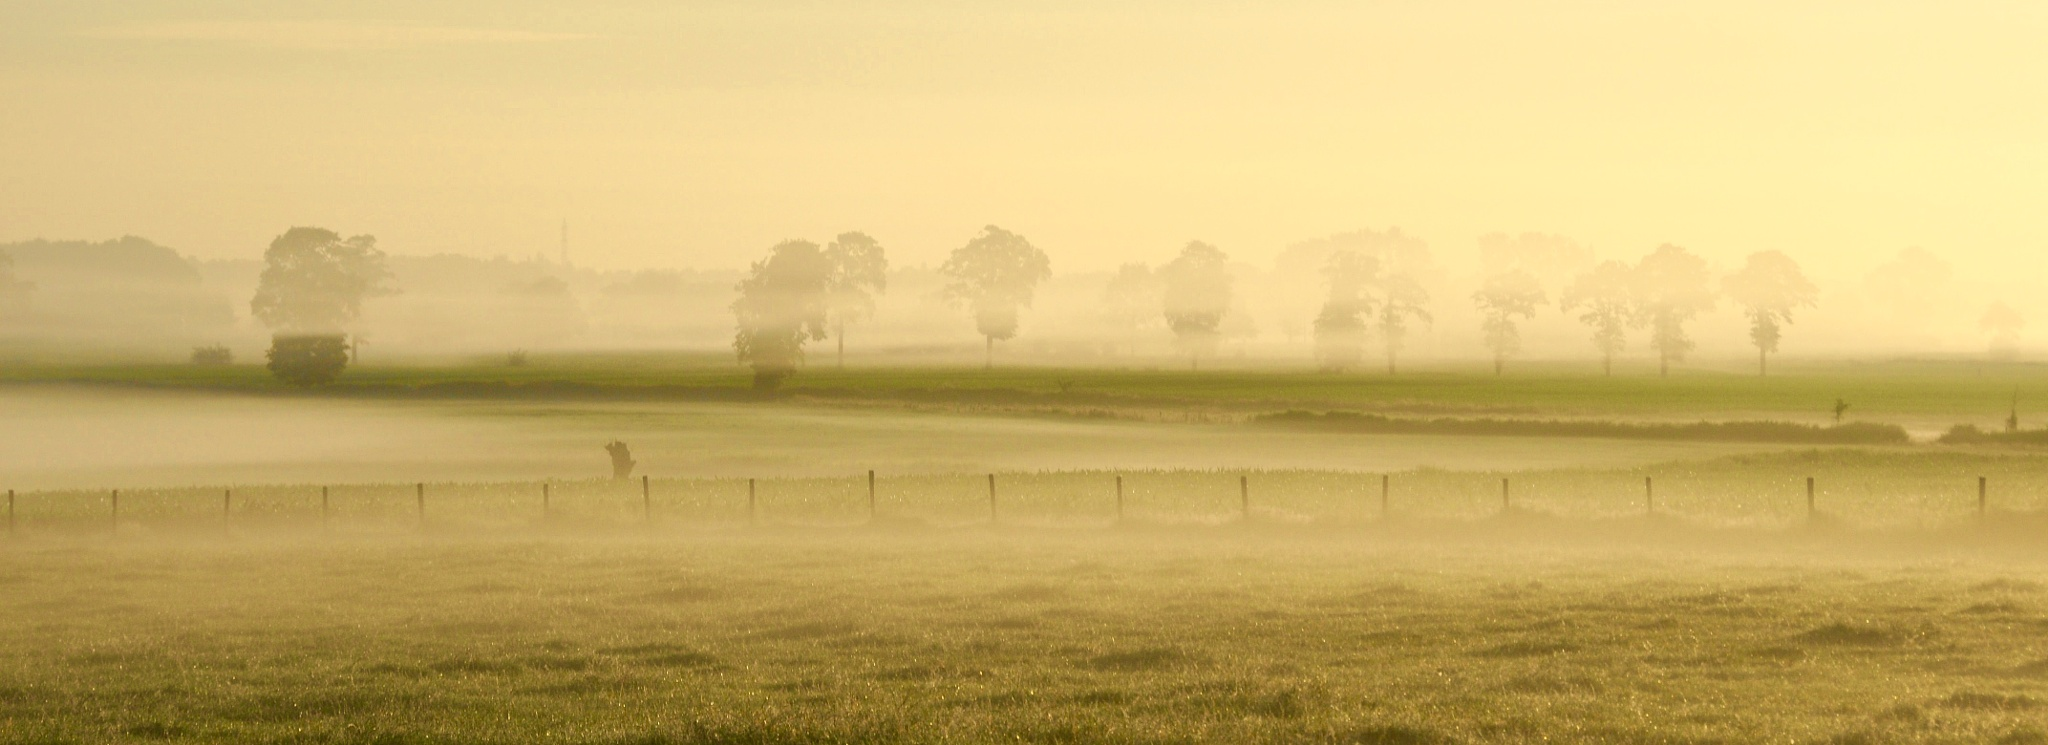 white horse in the morning  by Marc Verlee